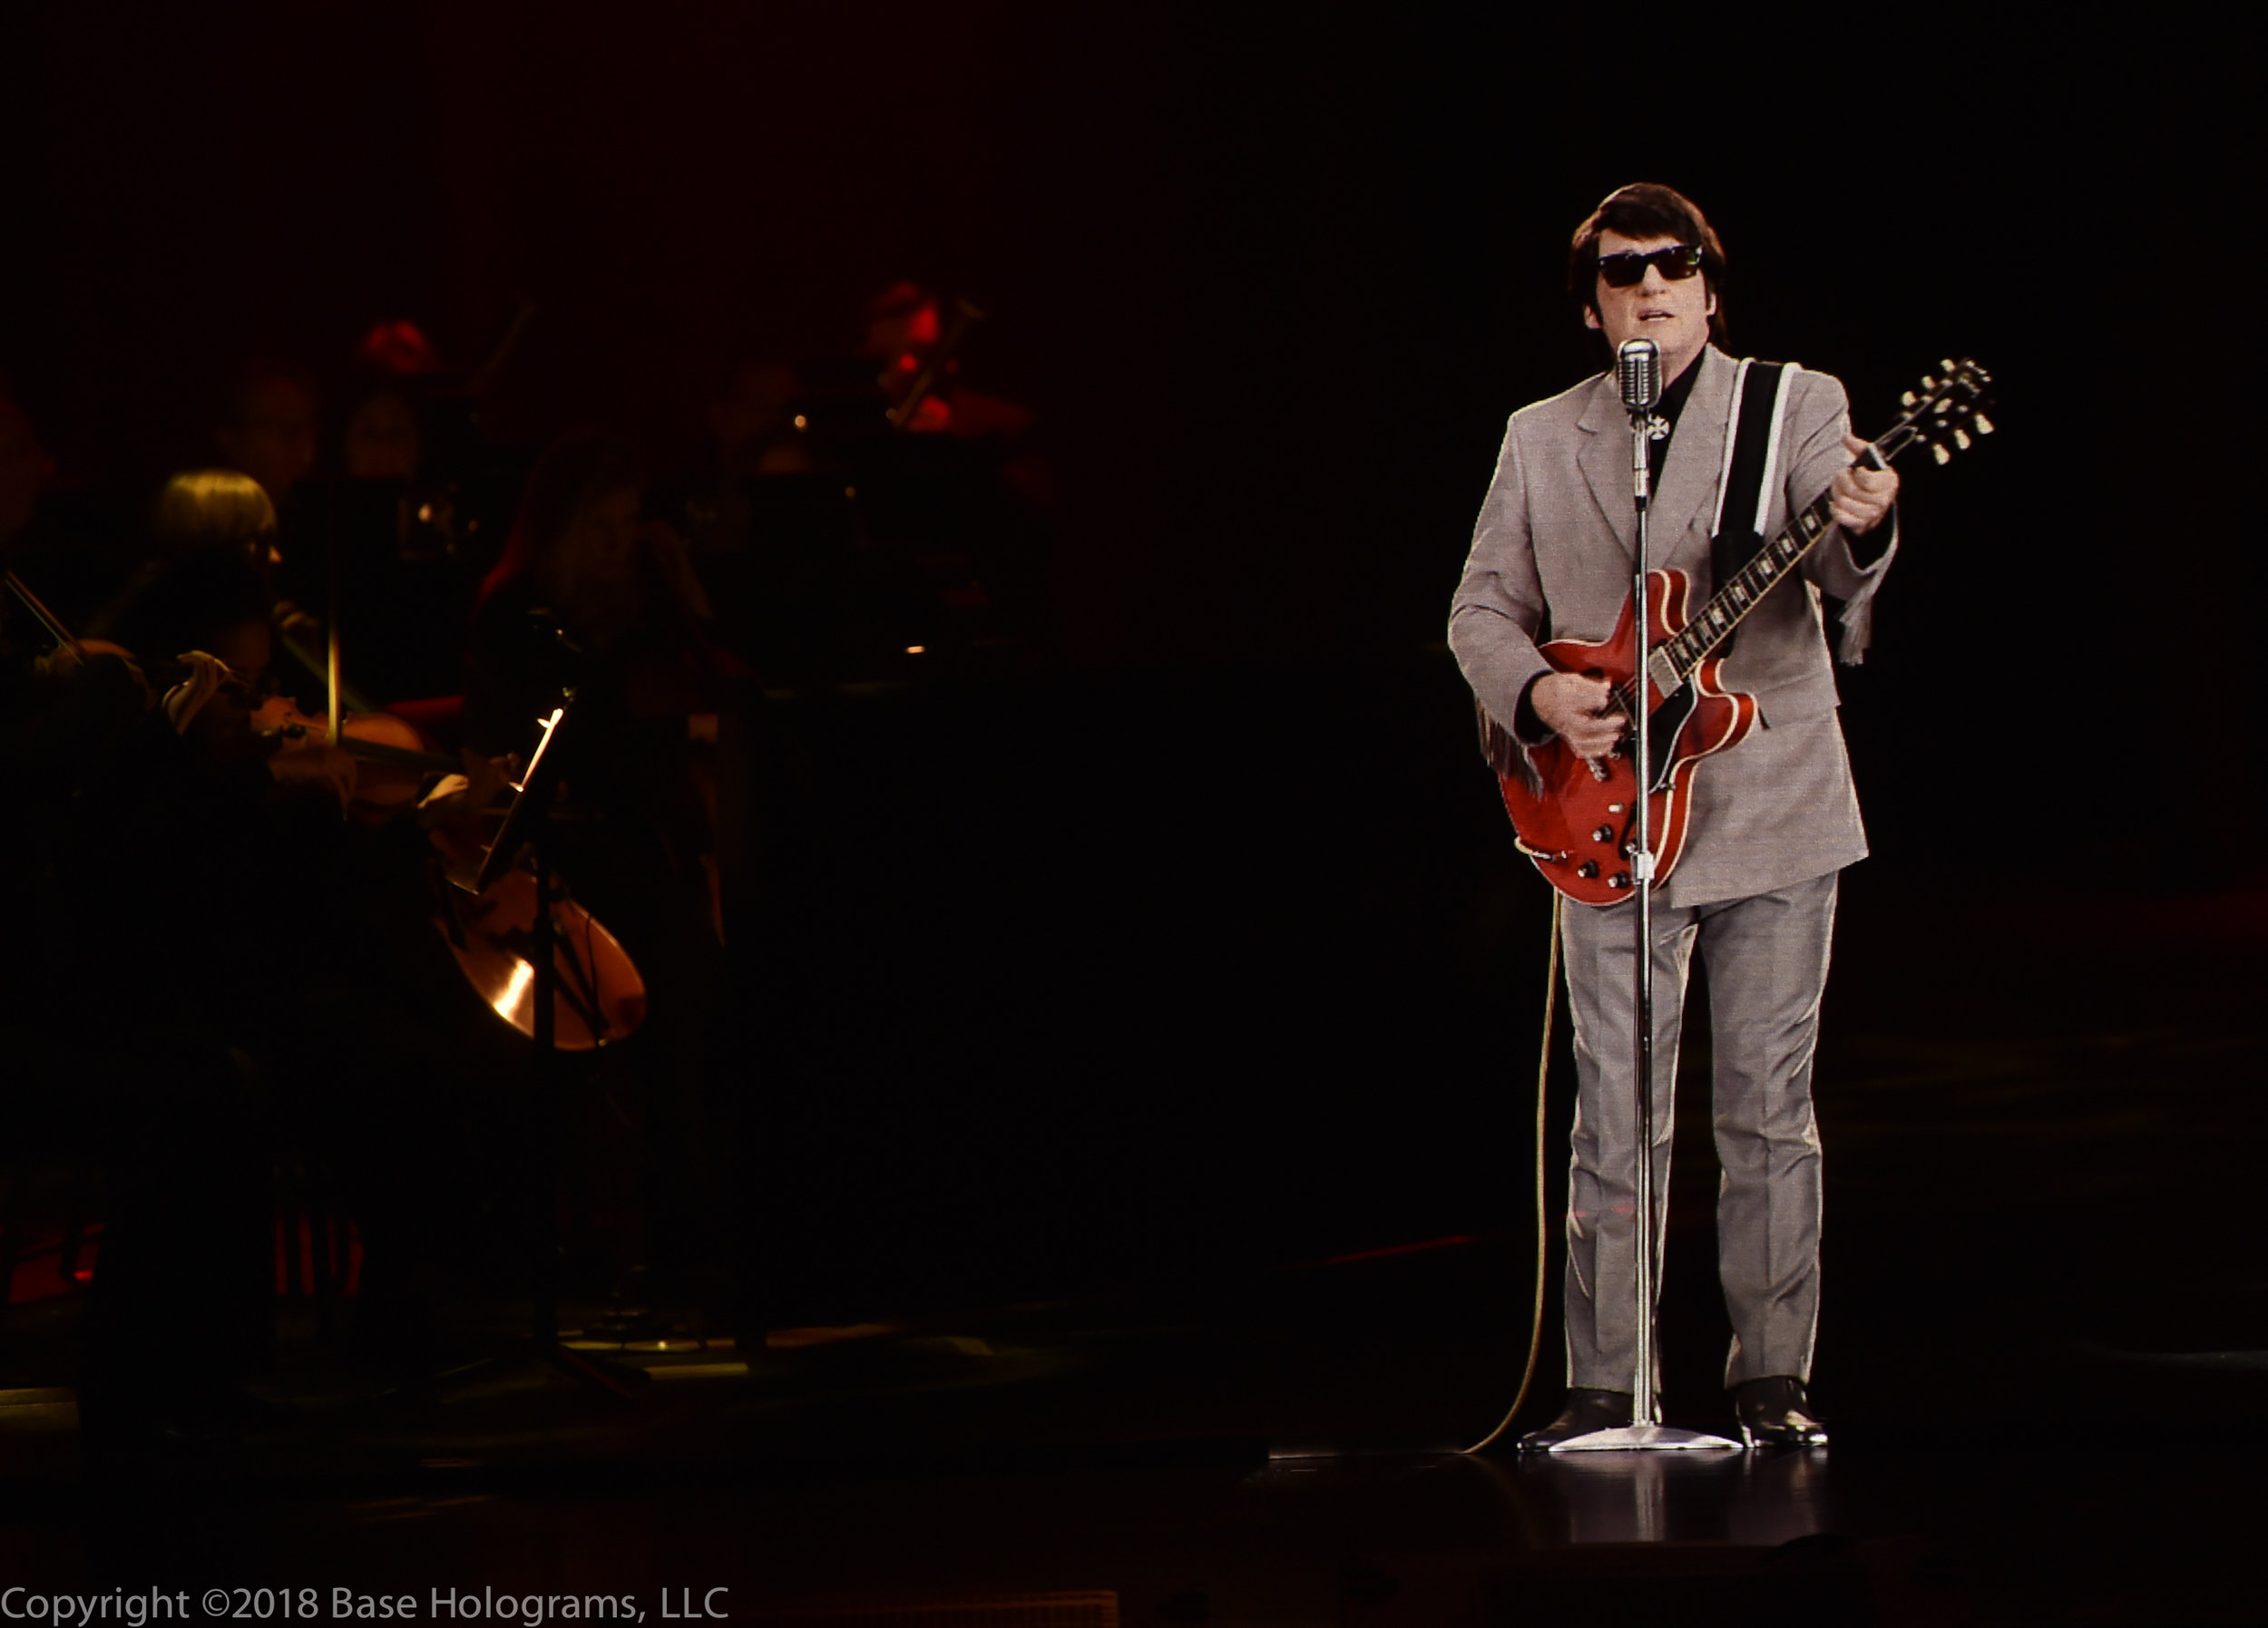 Roy Orbison Returns to the Stage at Parx Casino